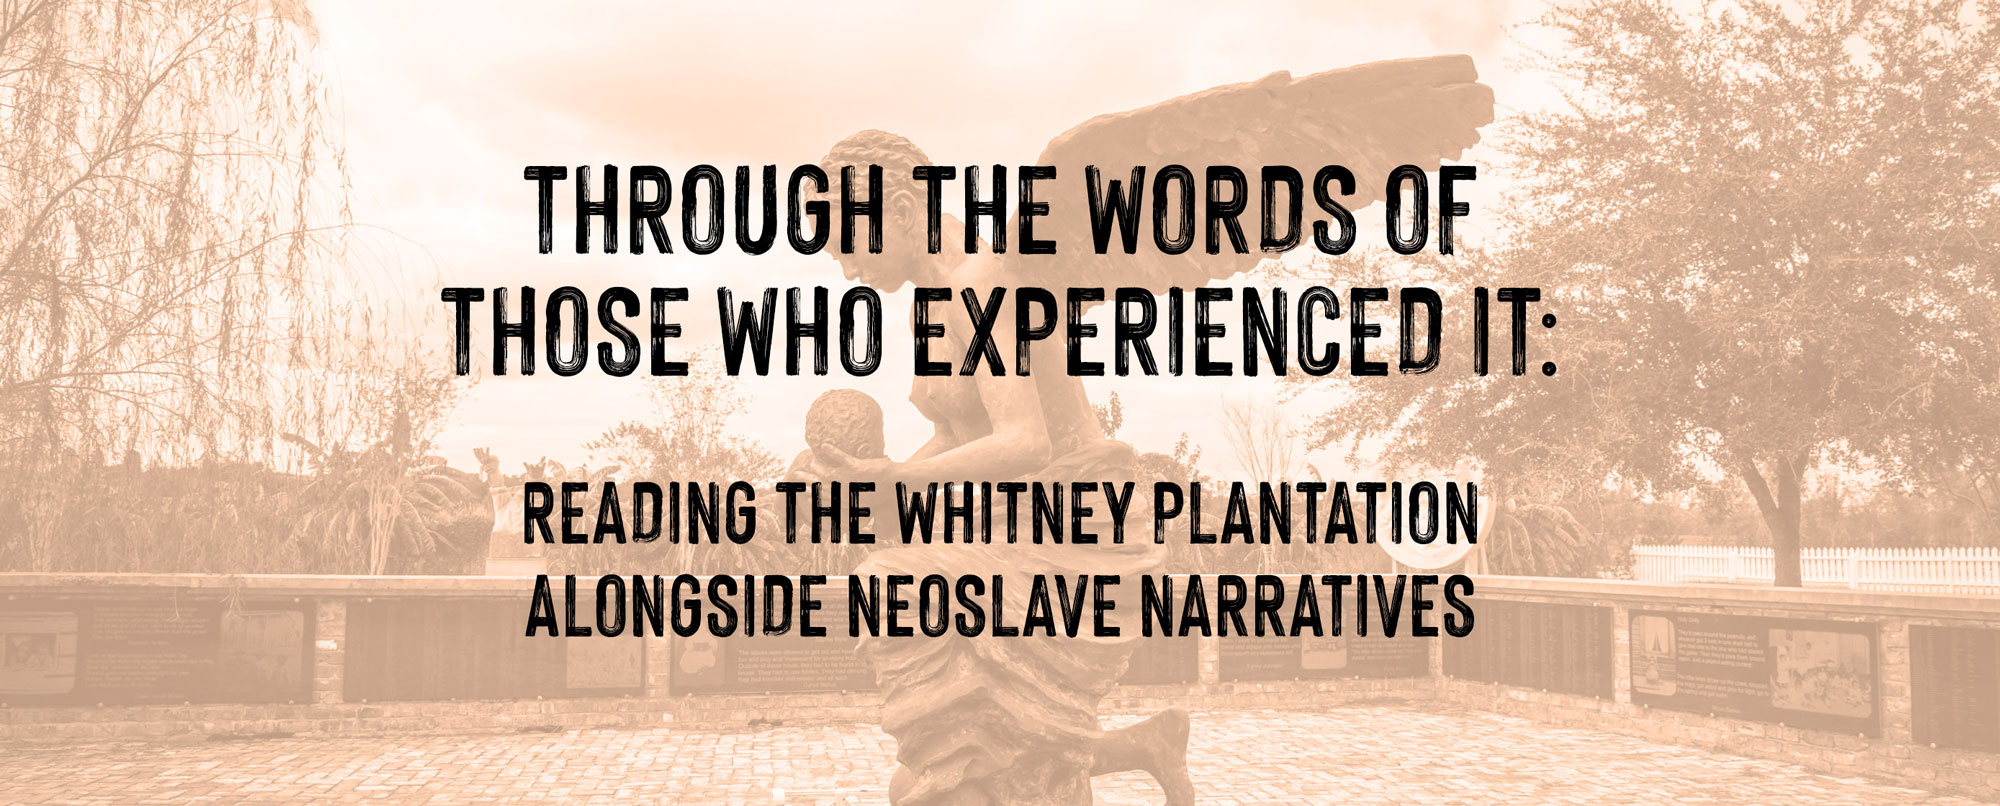 Through The Words Of Those Who Experienced It Reading The Whitney Plantation Alongside Neoslave Narratives